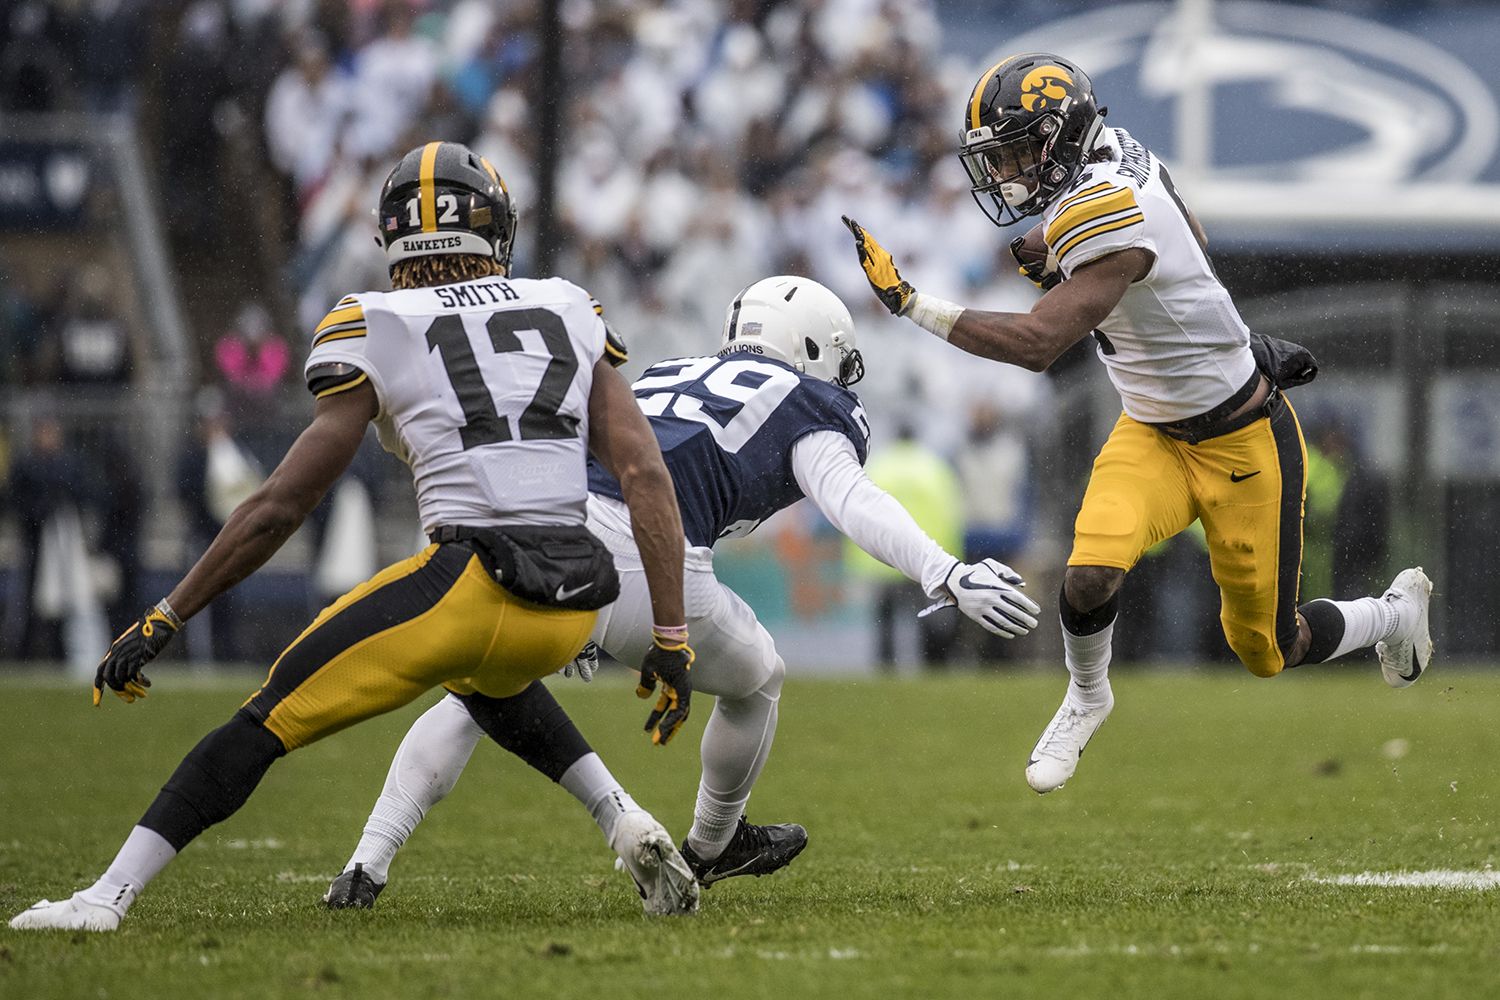 Iowa wide receiver Ihmir Smith-Marsette avoids a defender during Iowa's game against Penn State at Beaver Stadium on Saturday, October 27, 2018. The Nittany Lions defeated the Hawkeyes 30-24.